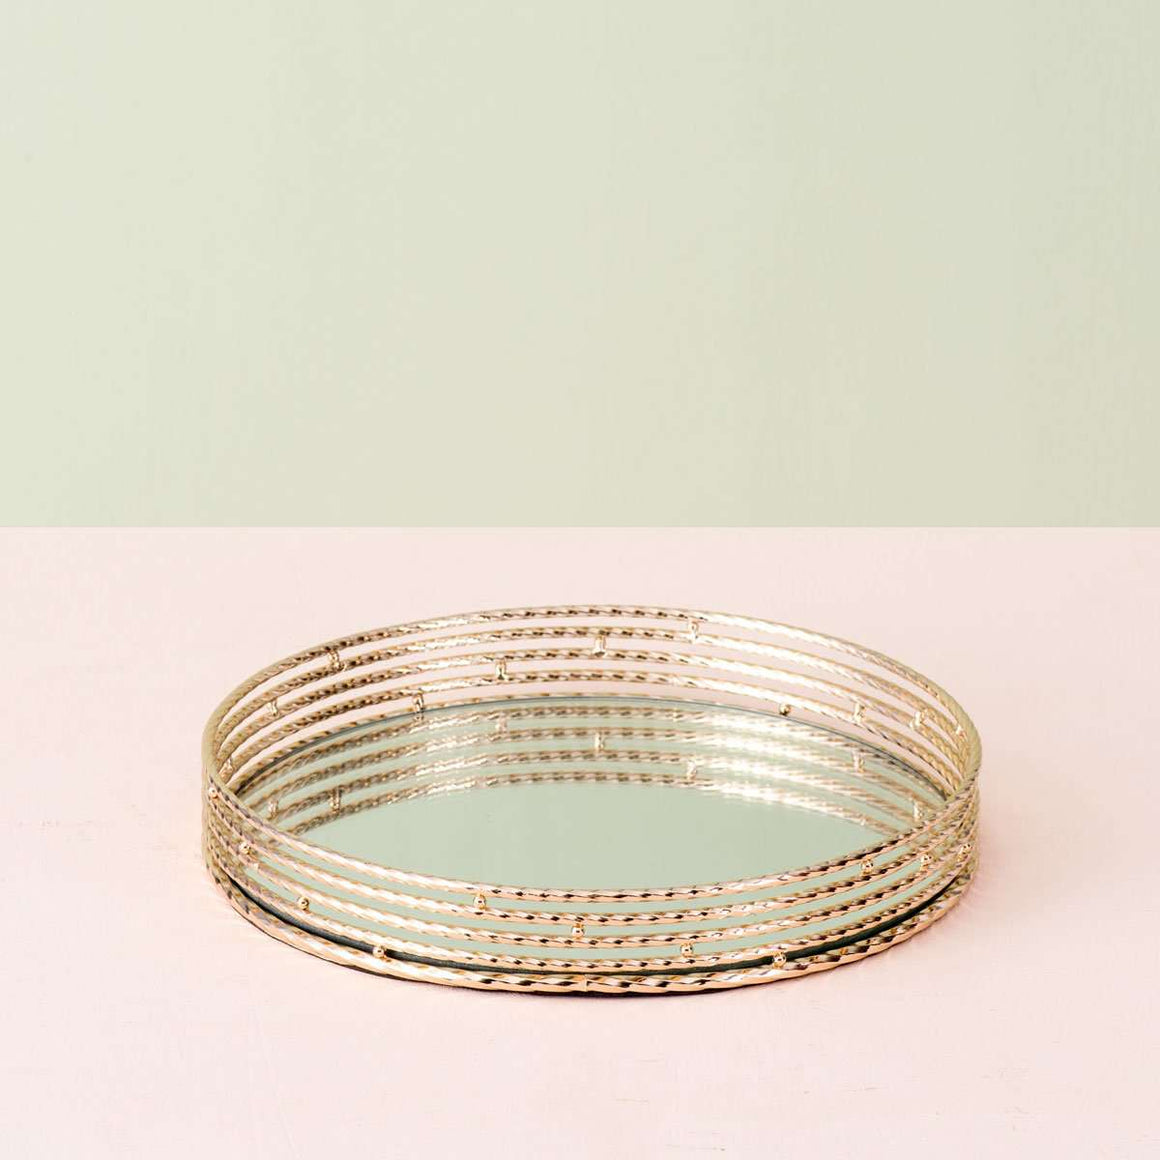 Roped - Mirrored Serving Tray